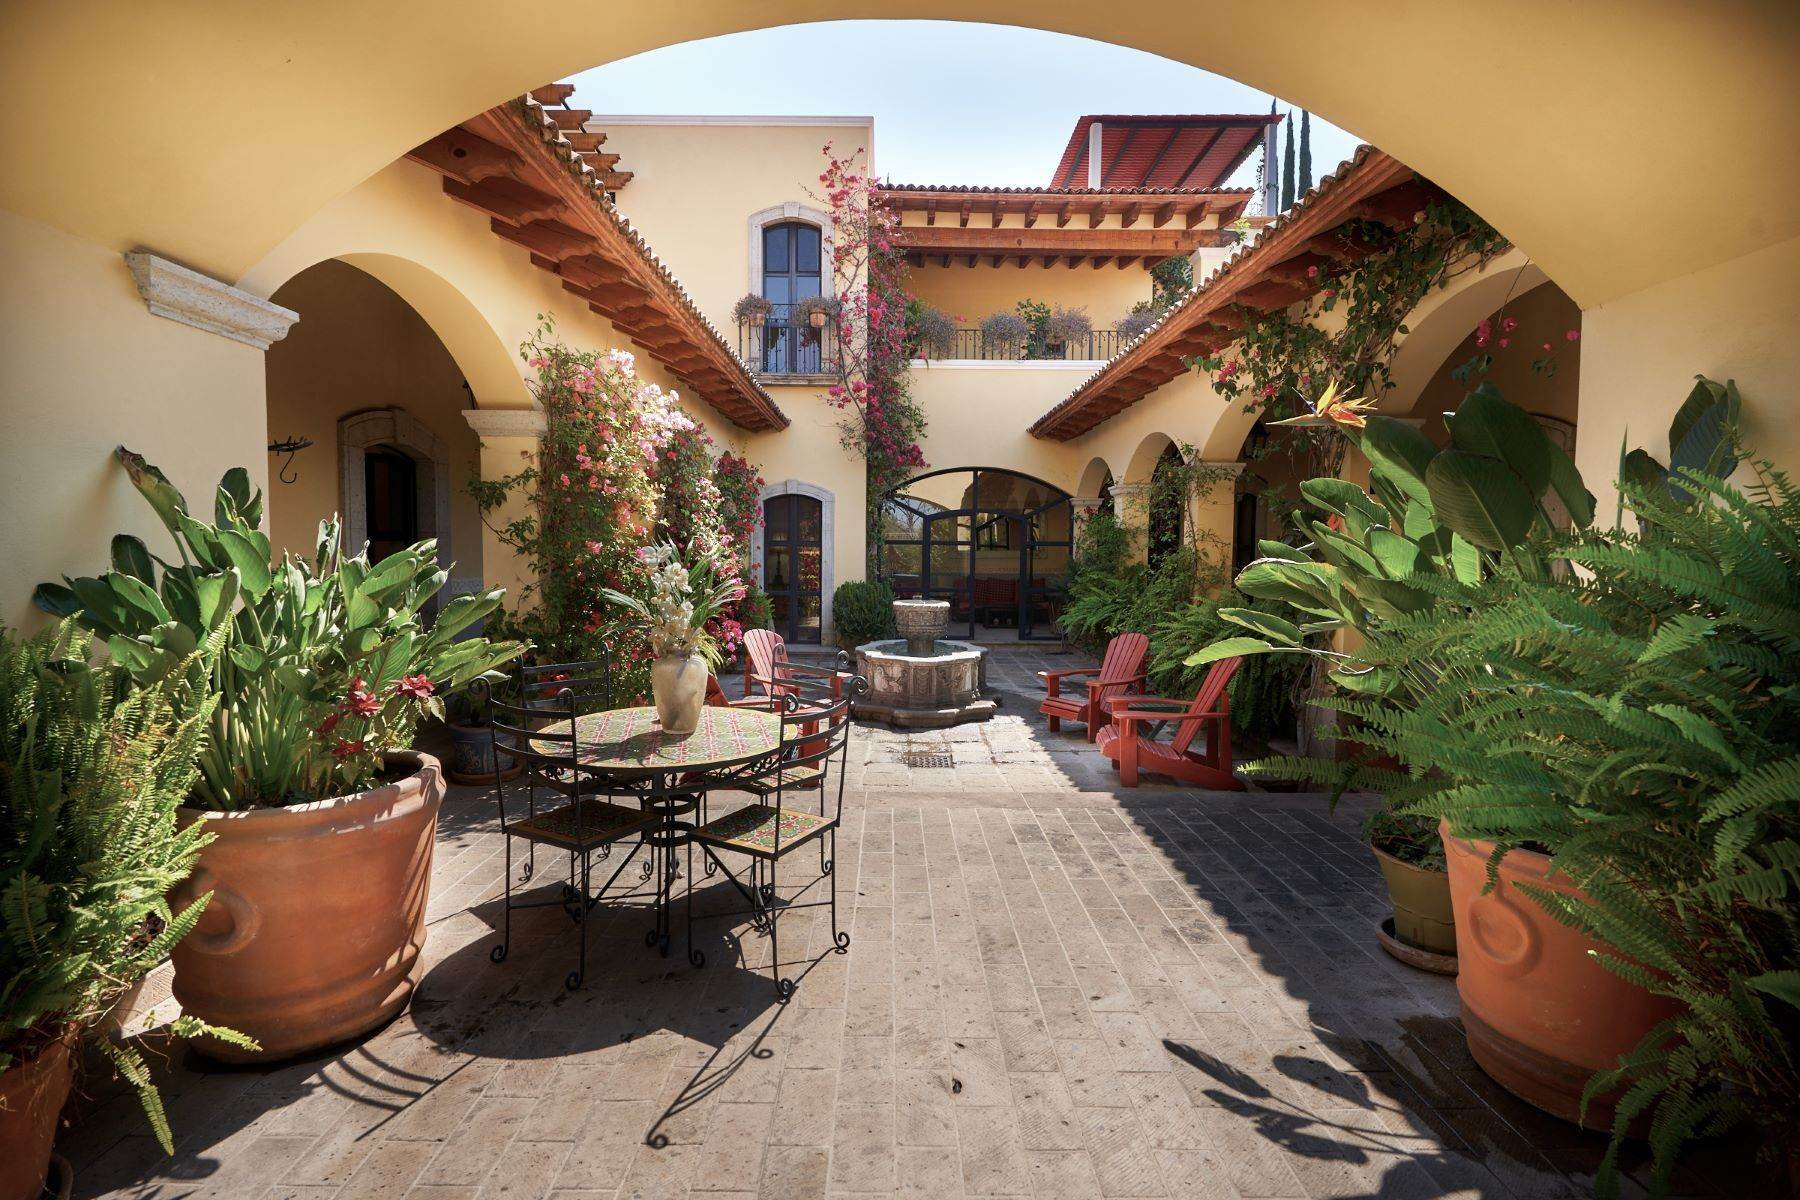 Single Family Homes for Sale at Casa de las Maravillas Sancho Panza 4 San Miguel De Allende, Guanajuato 37720 Mexico